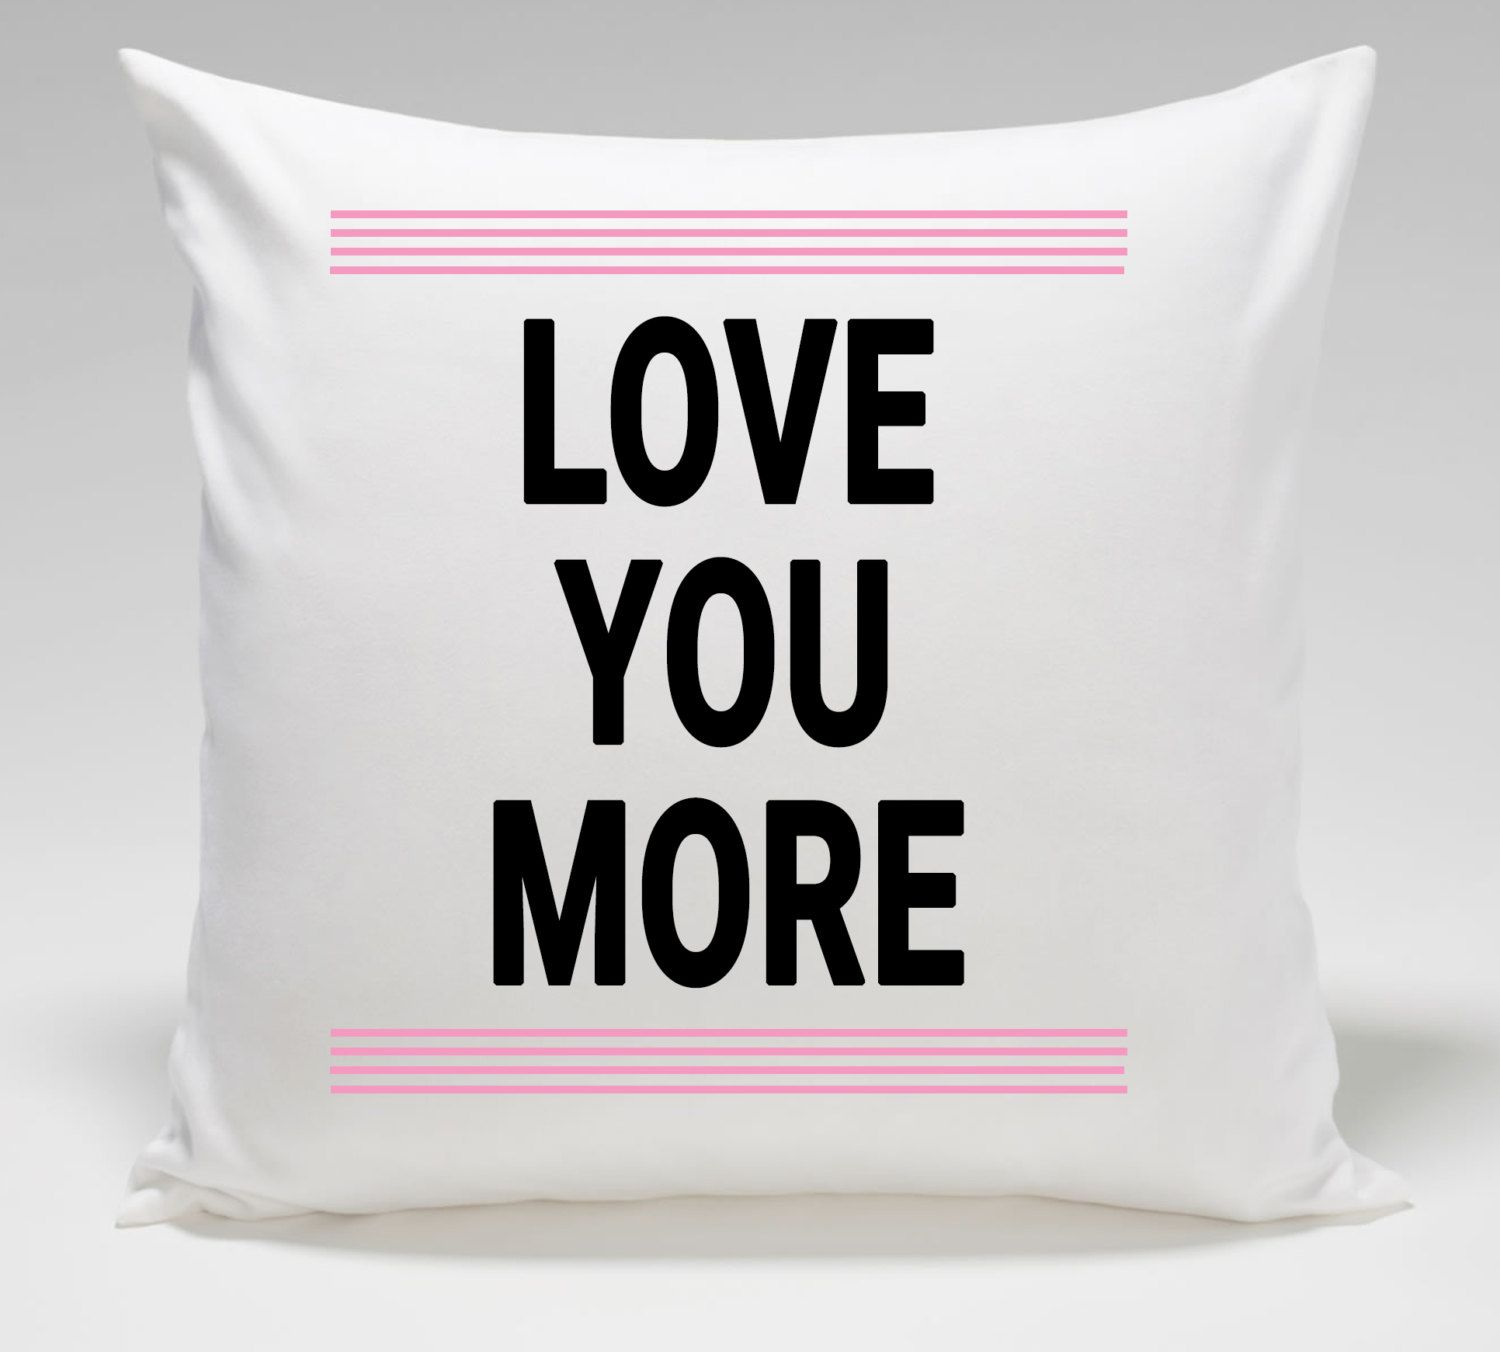 Love You More Throw Pillow, 18x18 Cotton Throw Pillow, Insert Included, Custom, Valetine's Day Decor, Gifts, Home Decor, Couples Gift, Love by ShopBlueBungalow.  www.Shopbluebungalow.com